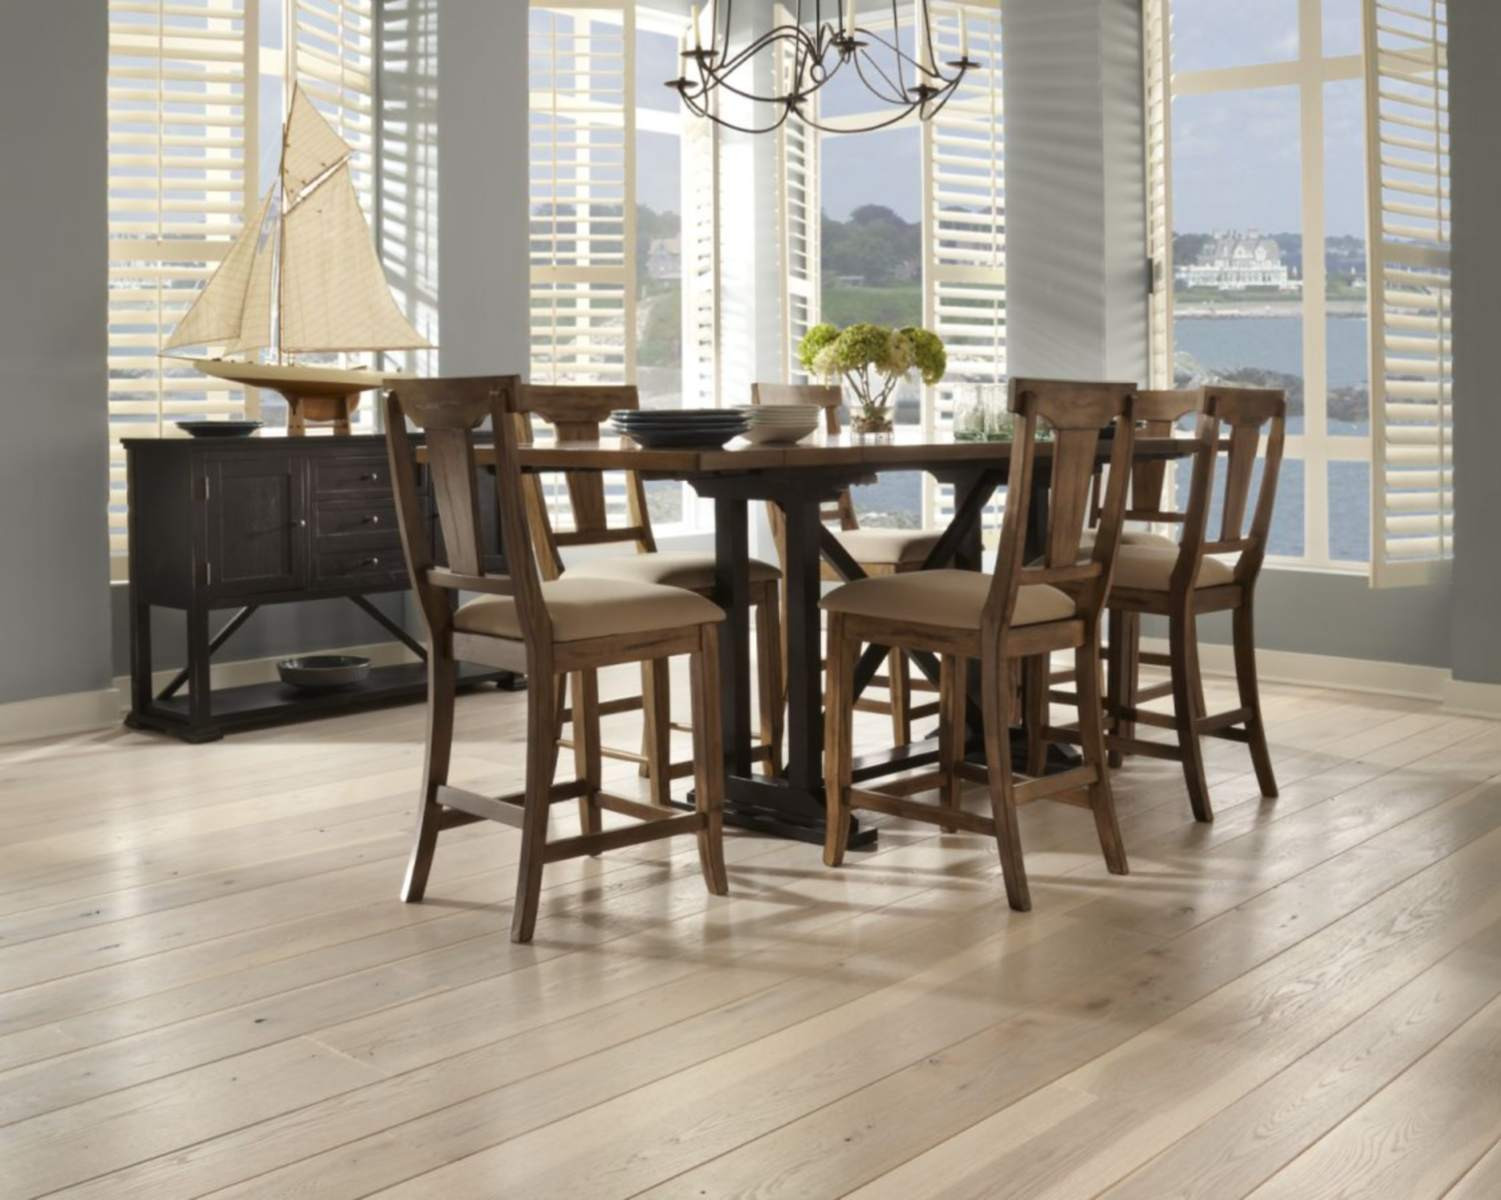 3 8 inch solid hardwood flooring of top 5 brands for solid hardwood flooring with regard to a dining room with carlisle hickorys wide plank flooring